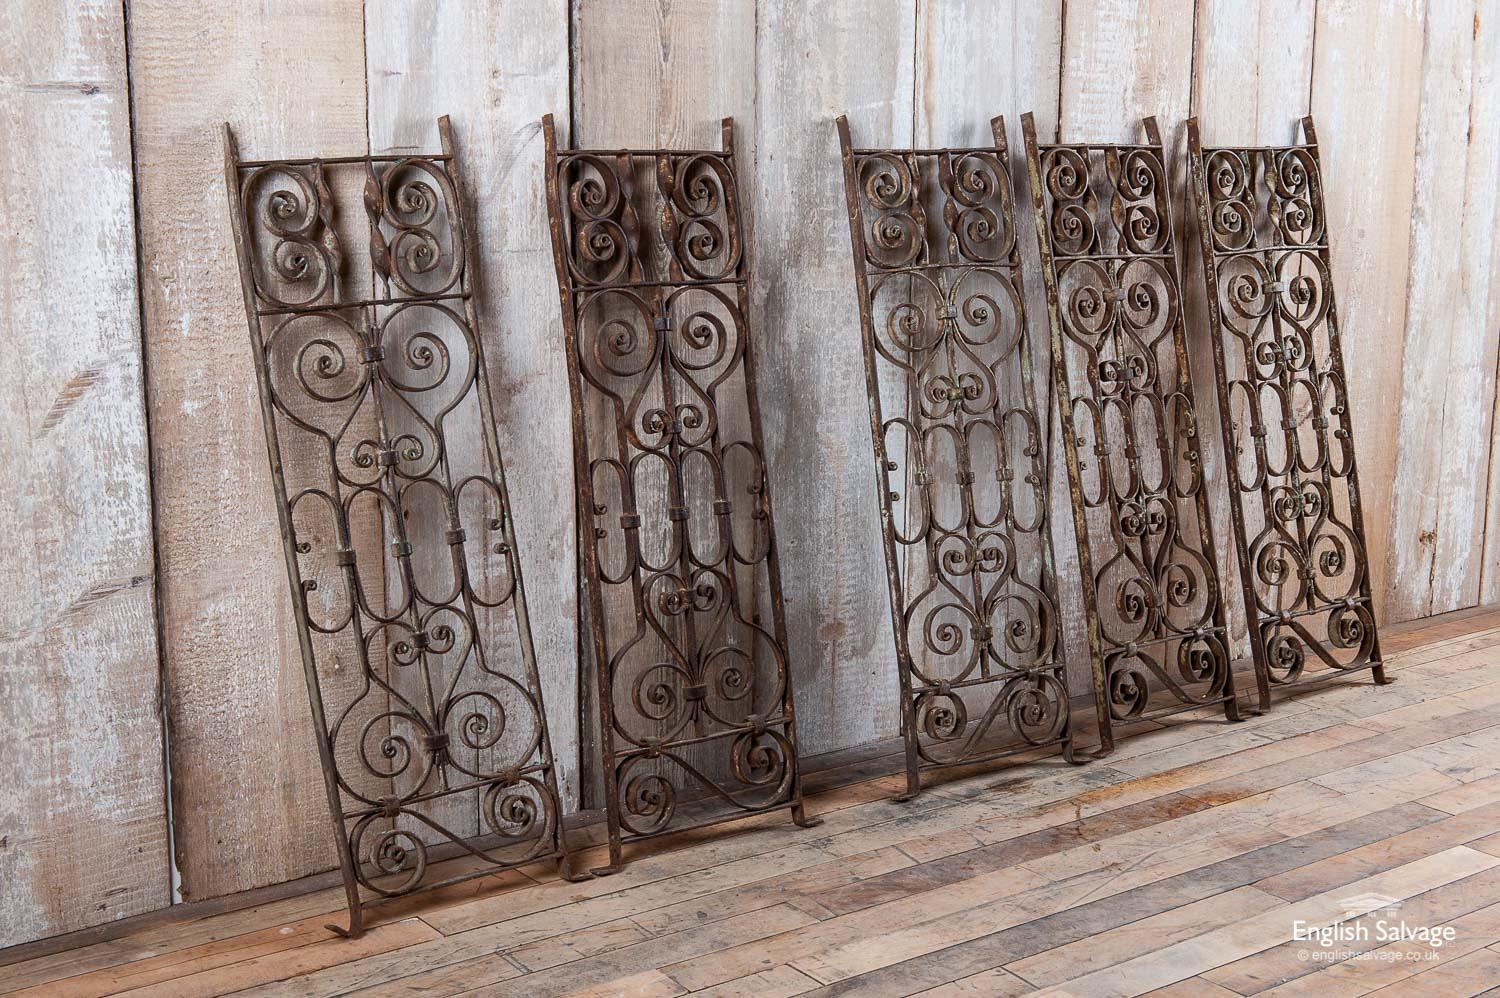 Decorative wrought iron scrollwork railings